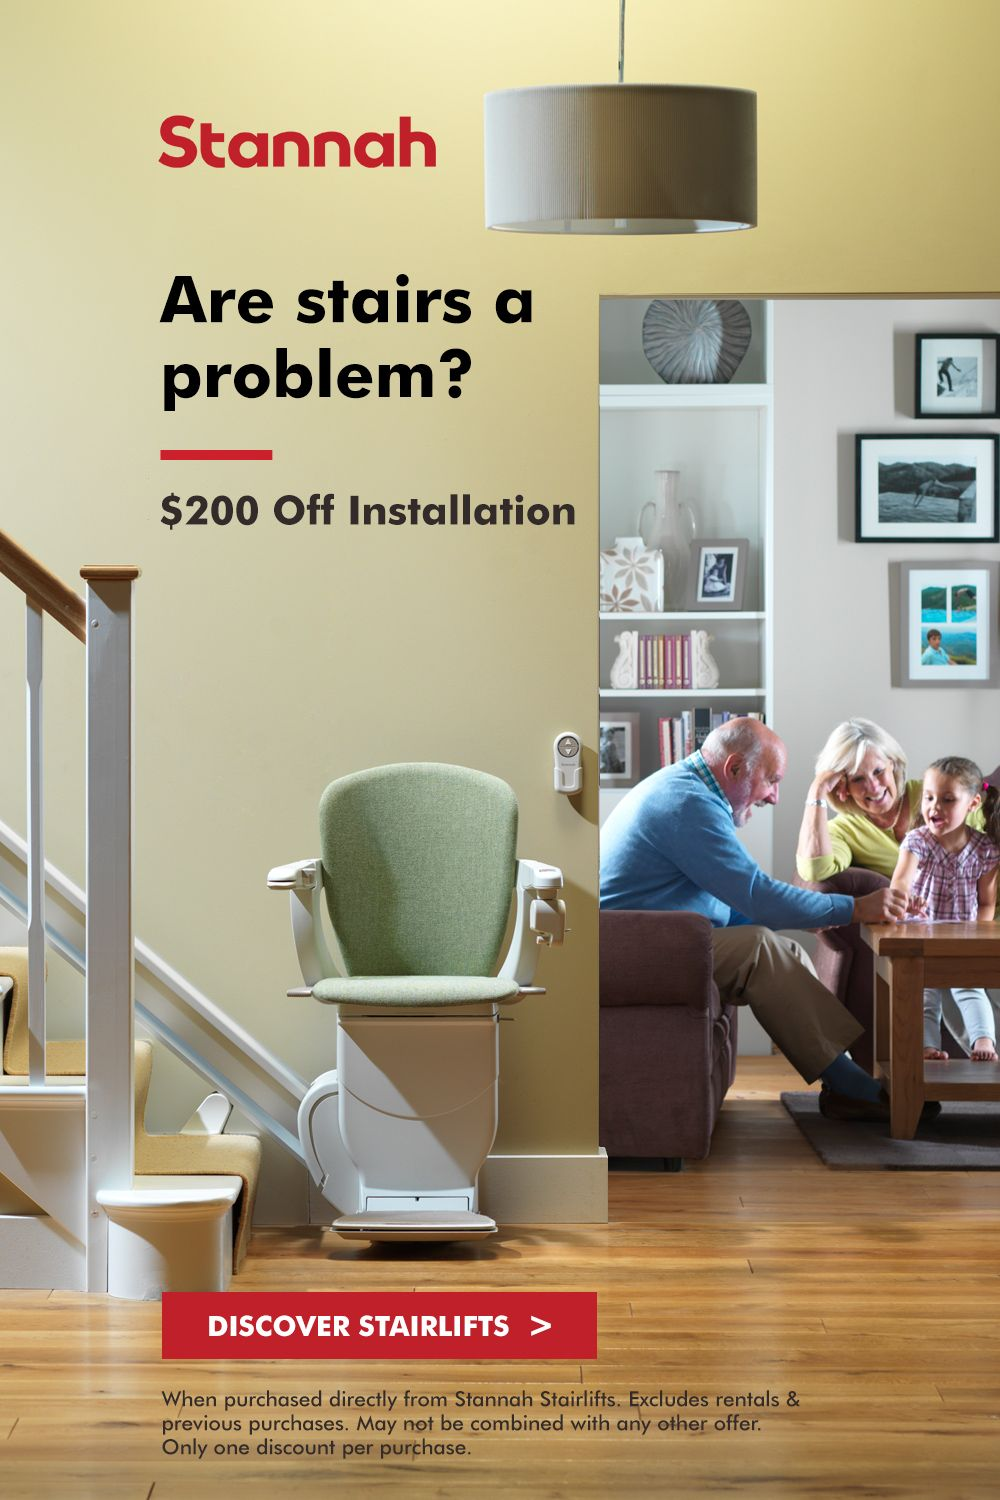 A Stannah Stairlift Is The Answer Mention Pinterest For 200 Off Installation Home Home Decor Styles Grandma Crafts